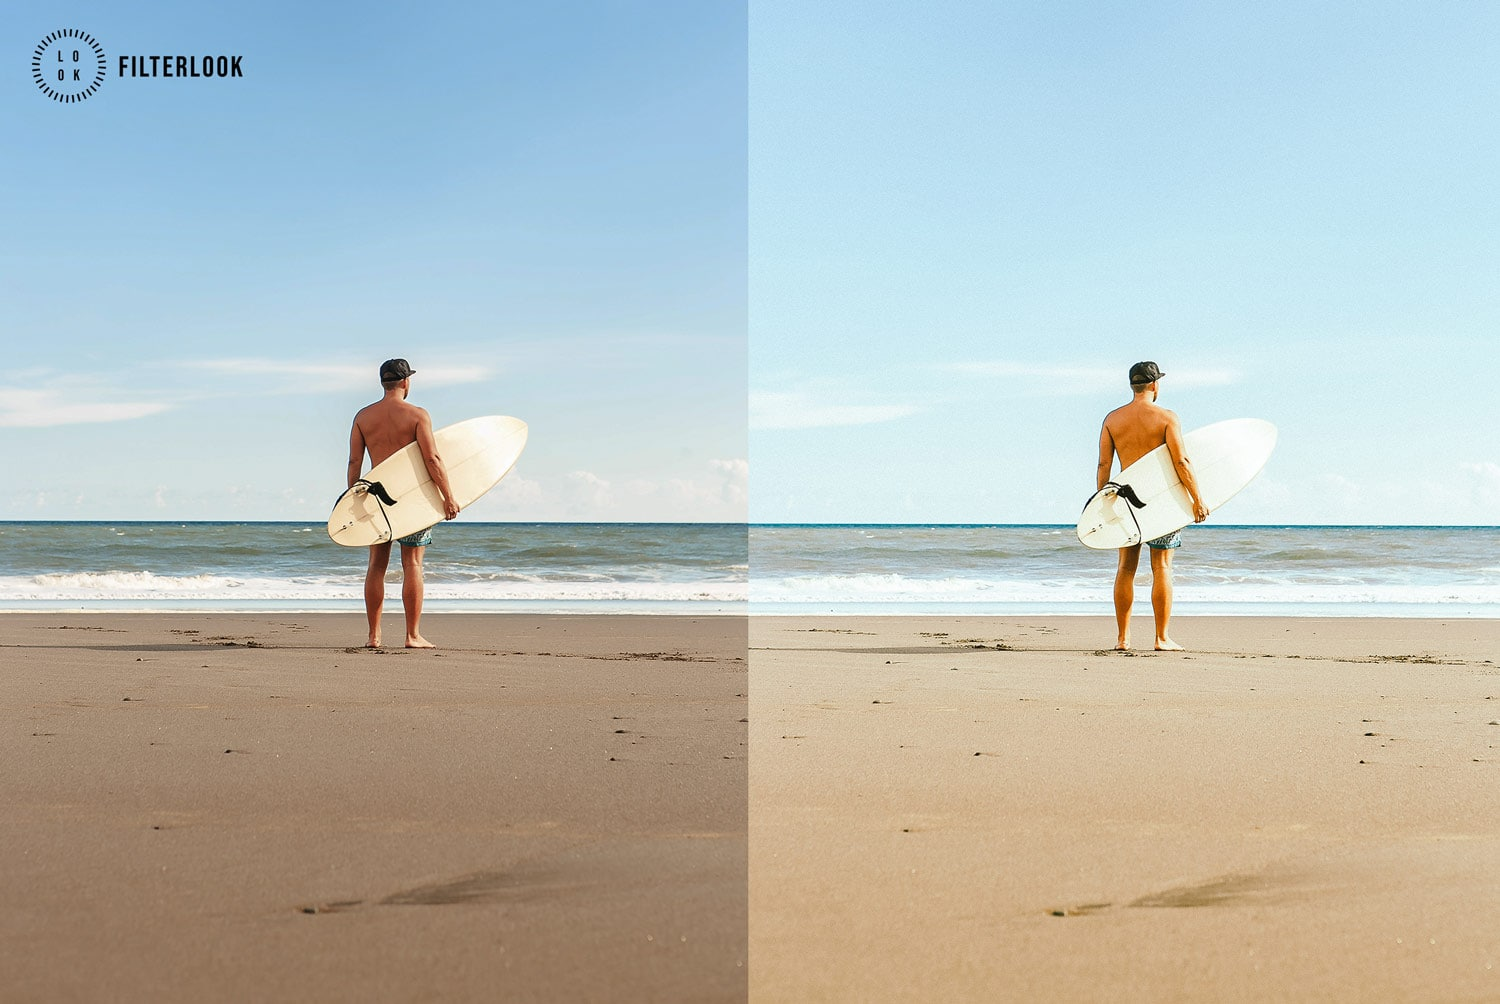 Free-Lightroom-Preset-Iconic-Fade-Before-and-After-Filterlook.com